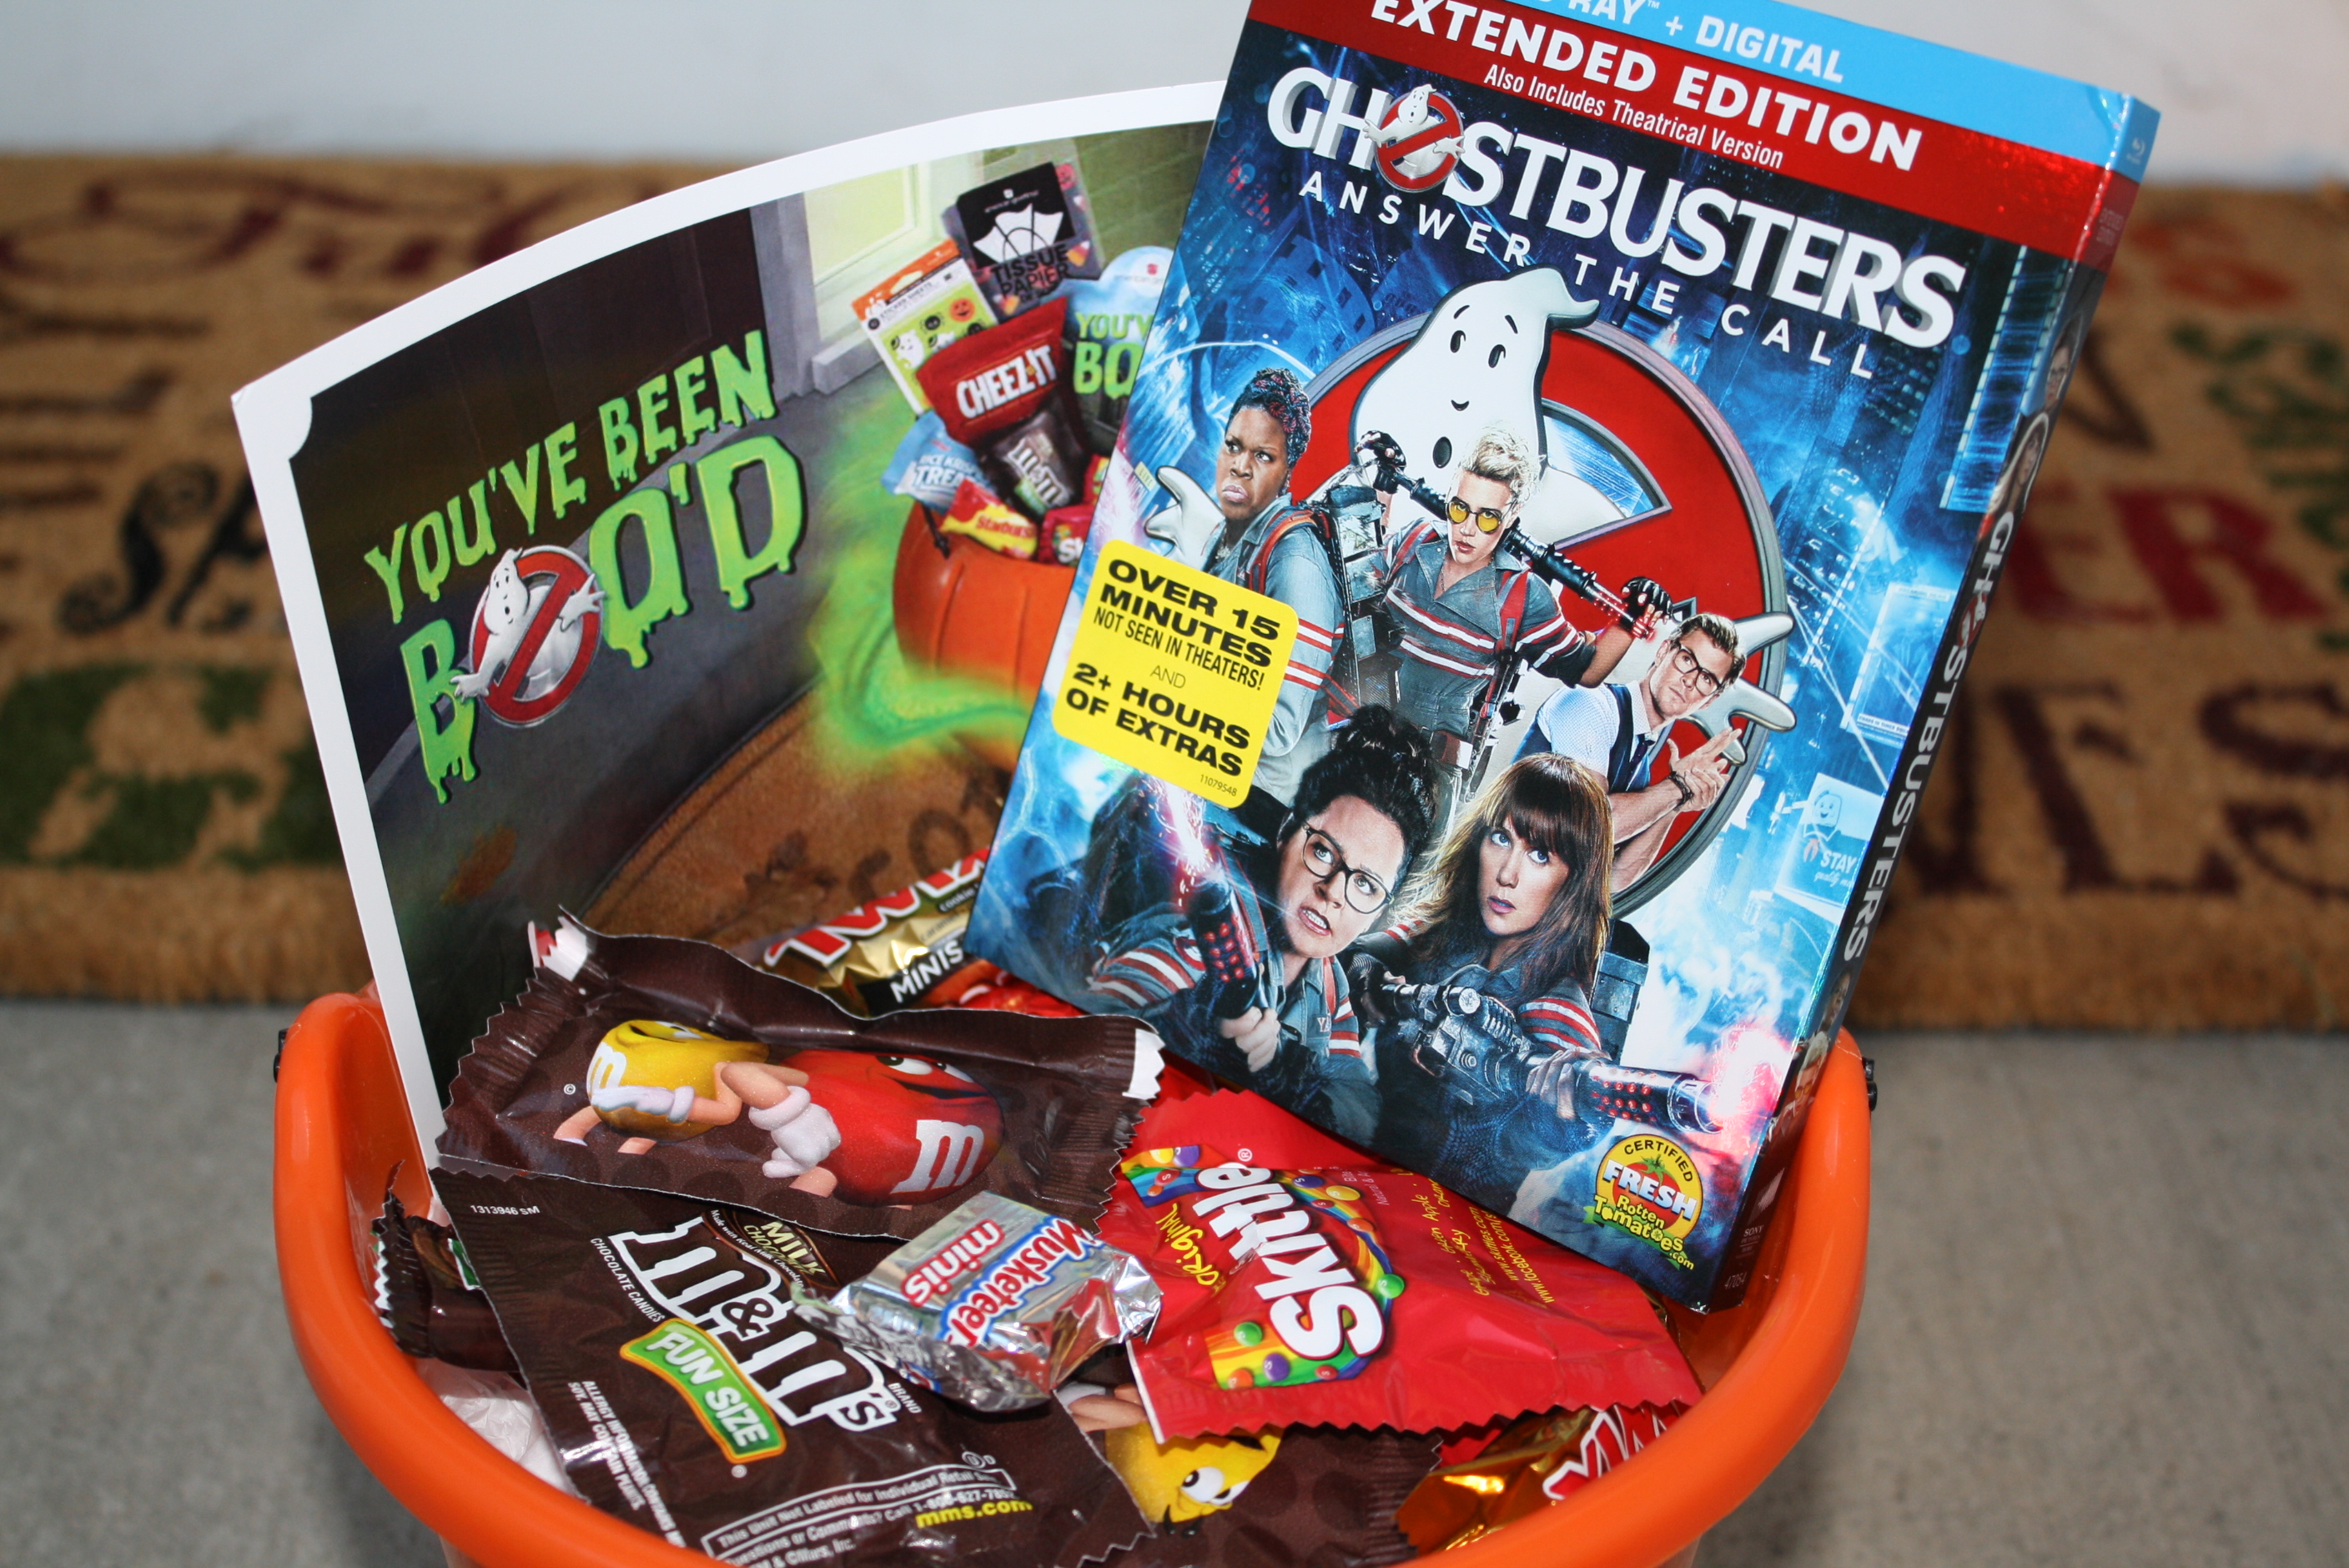 Boo-It-Forward With Ghostbusters and Walmart! #BooItForward #Ghostbusters